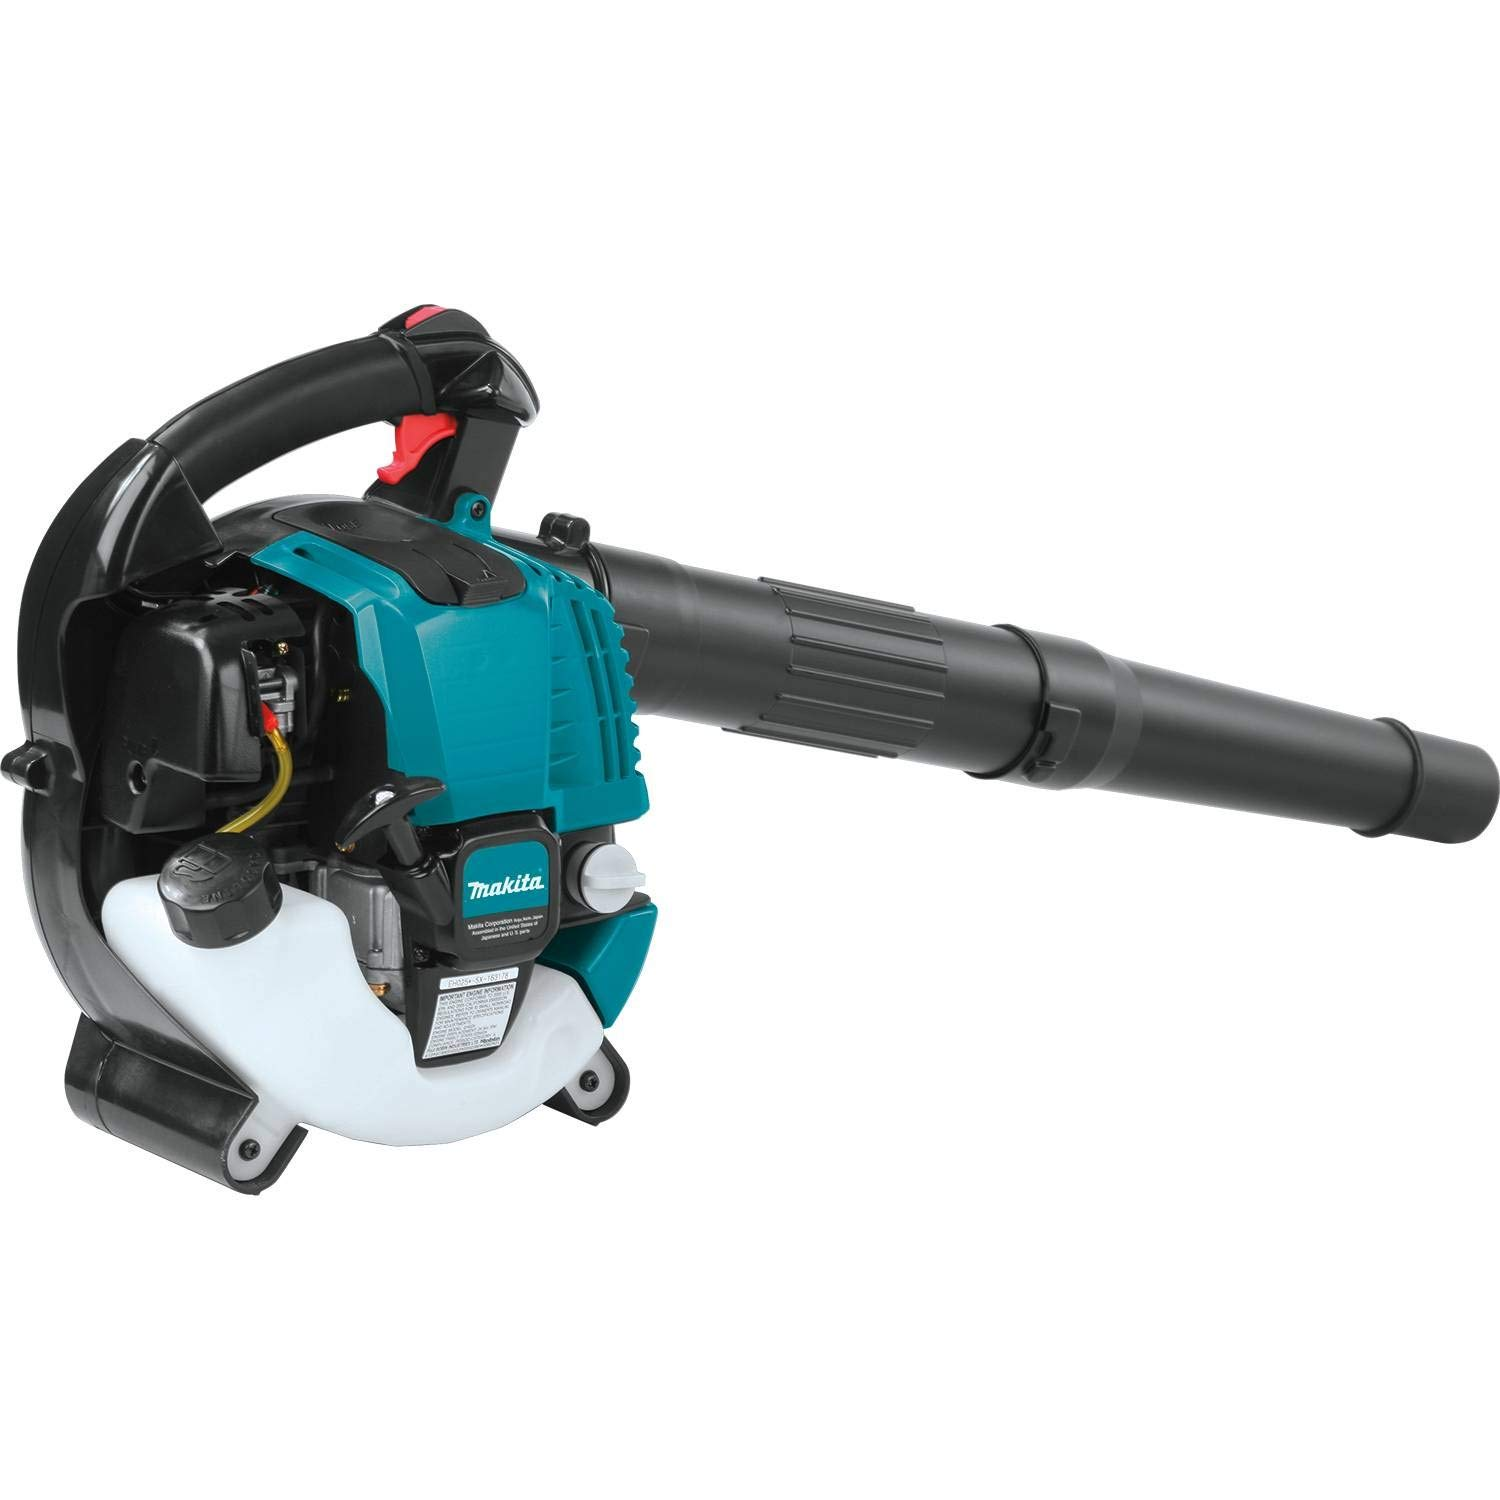 Top 10 Best Leaf Blowers (2020 Reviews & Buying Guide) 9